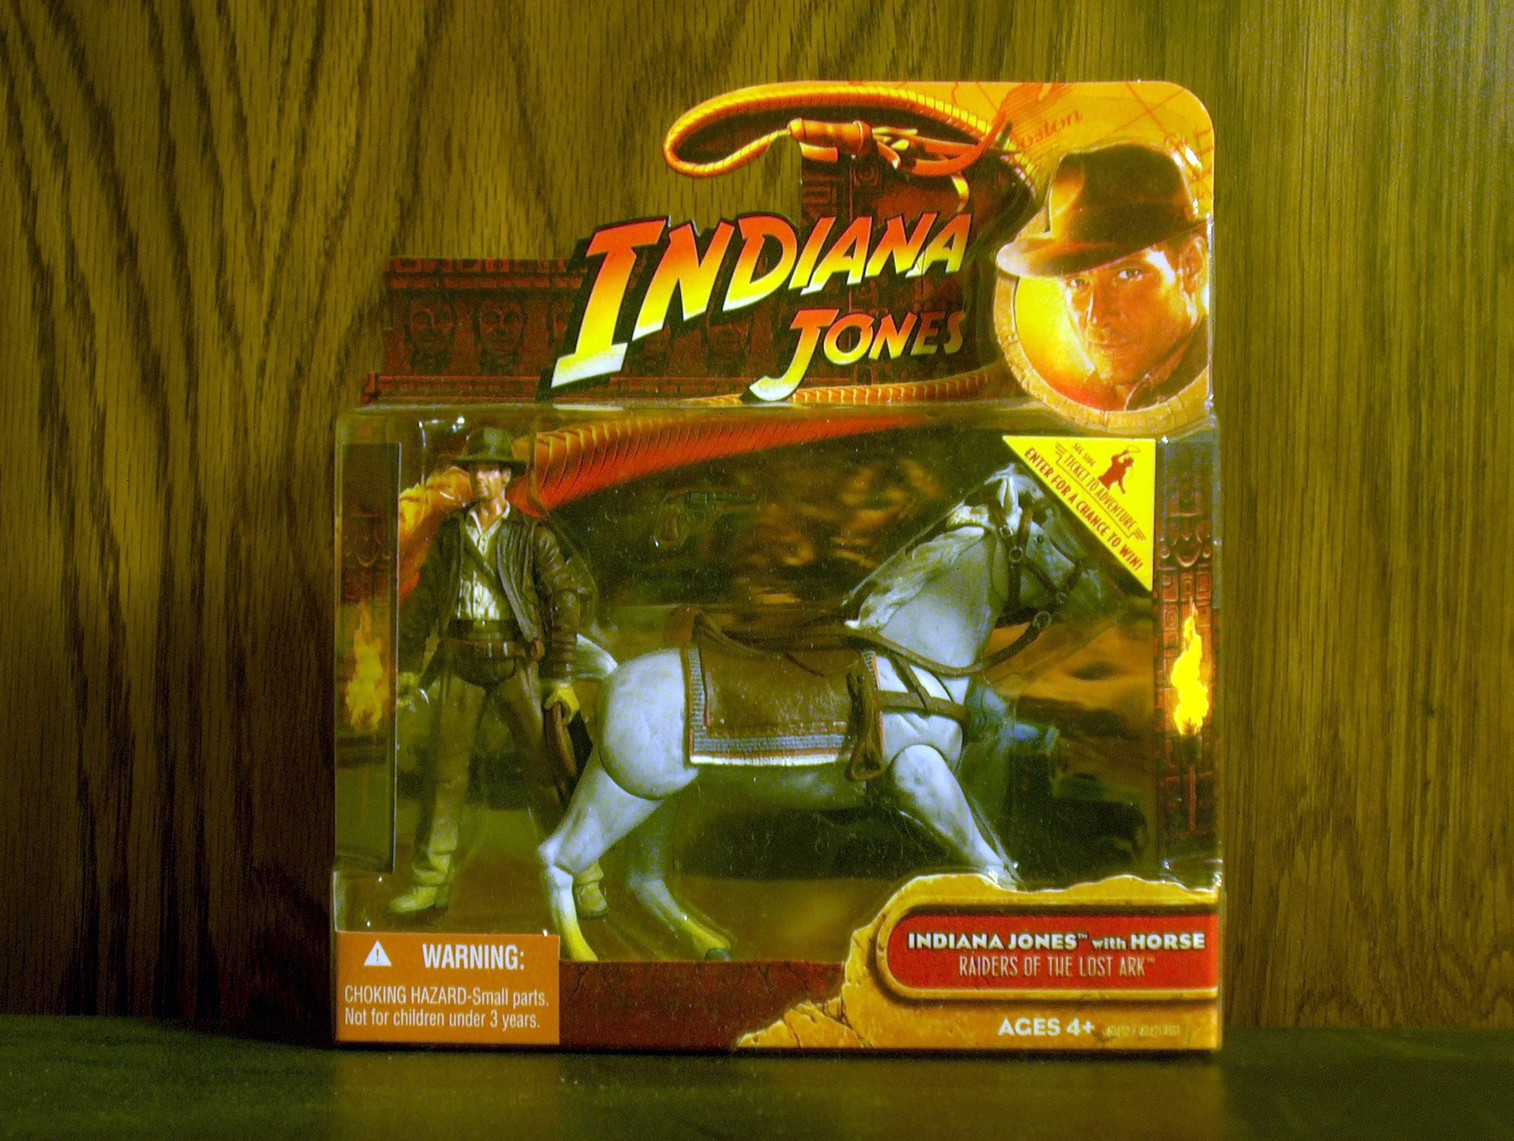 Indiana Jones with Horse